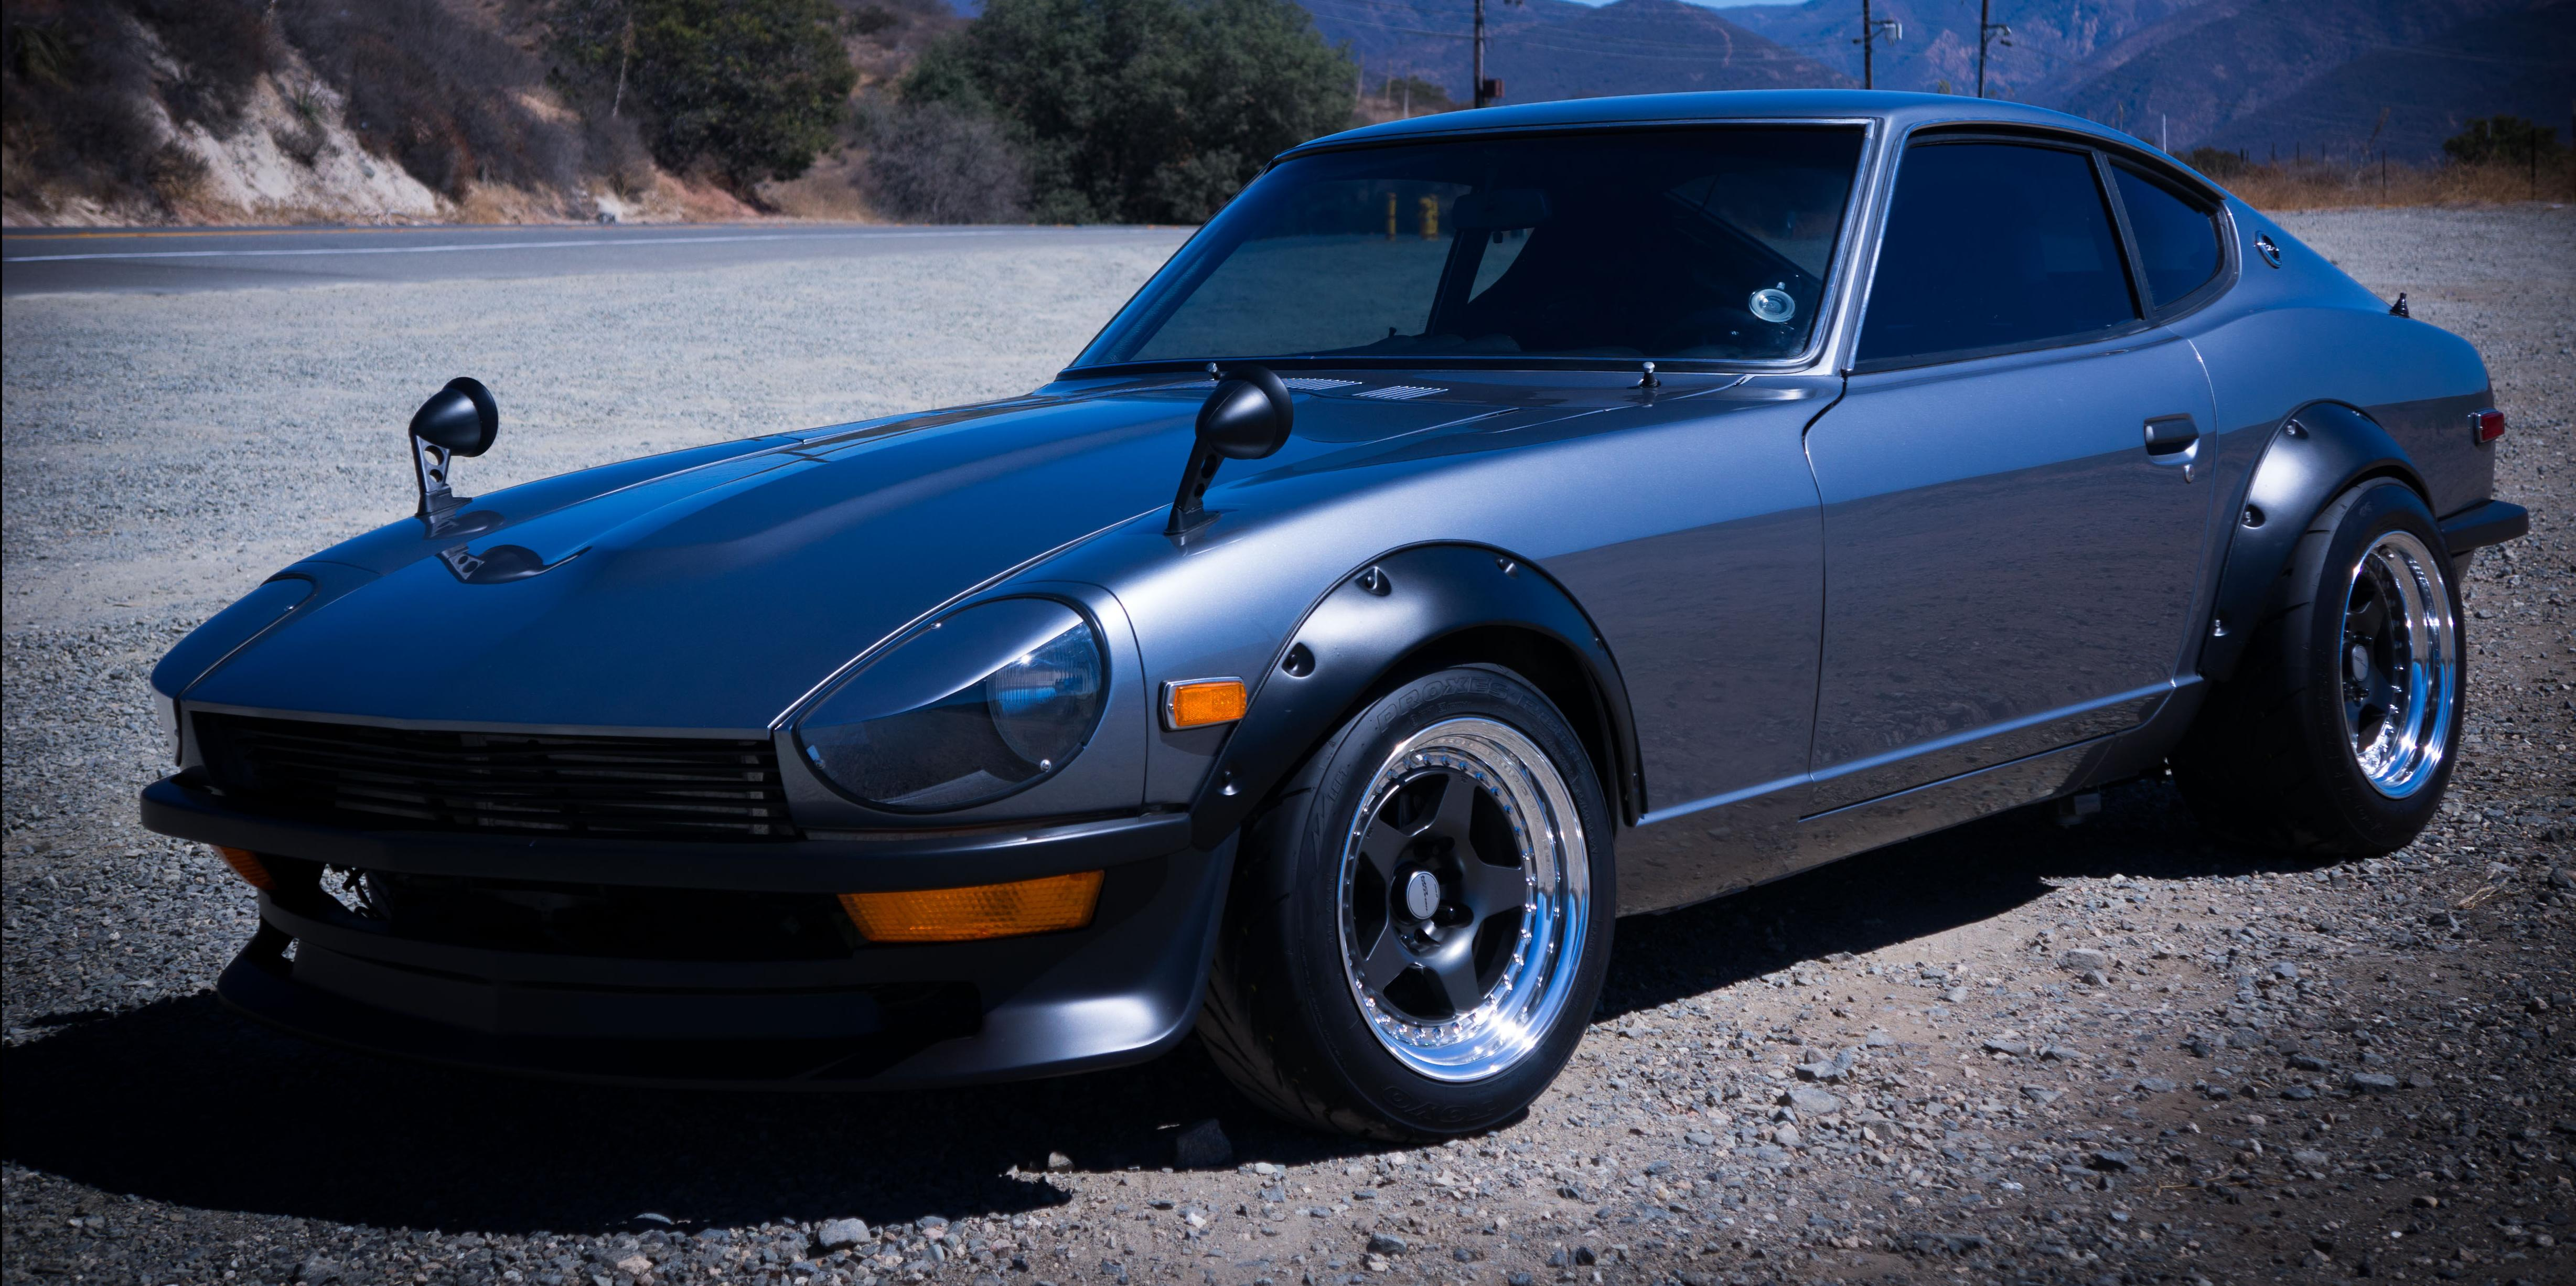 datsun 260z manual download